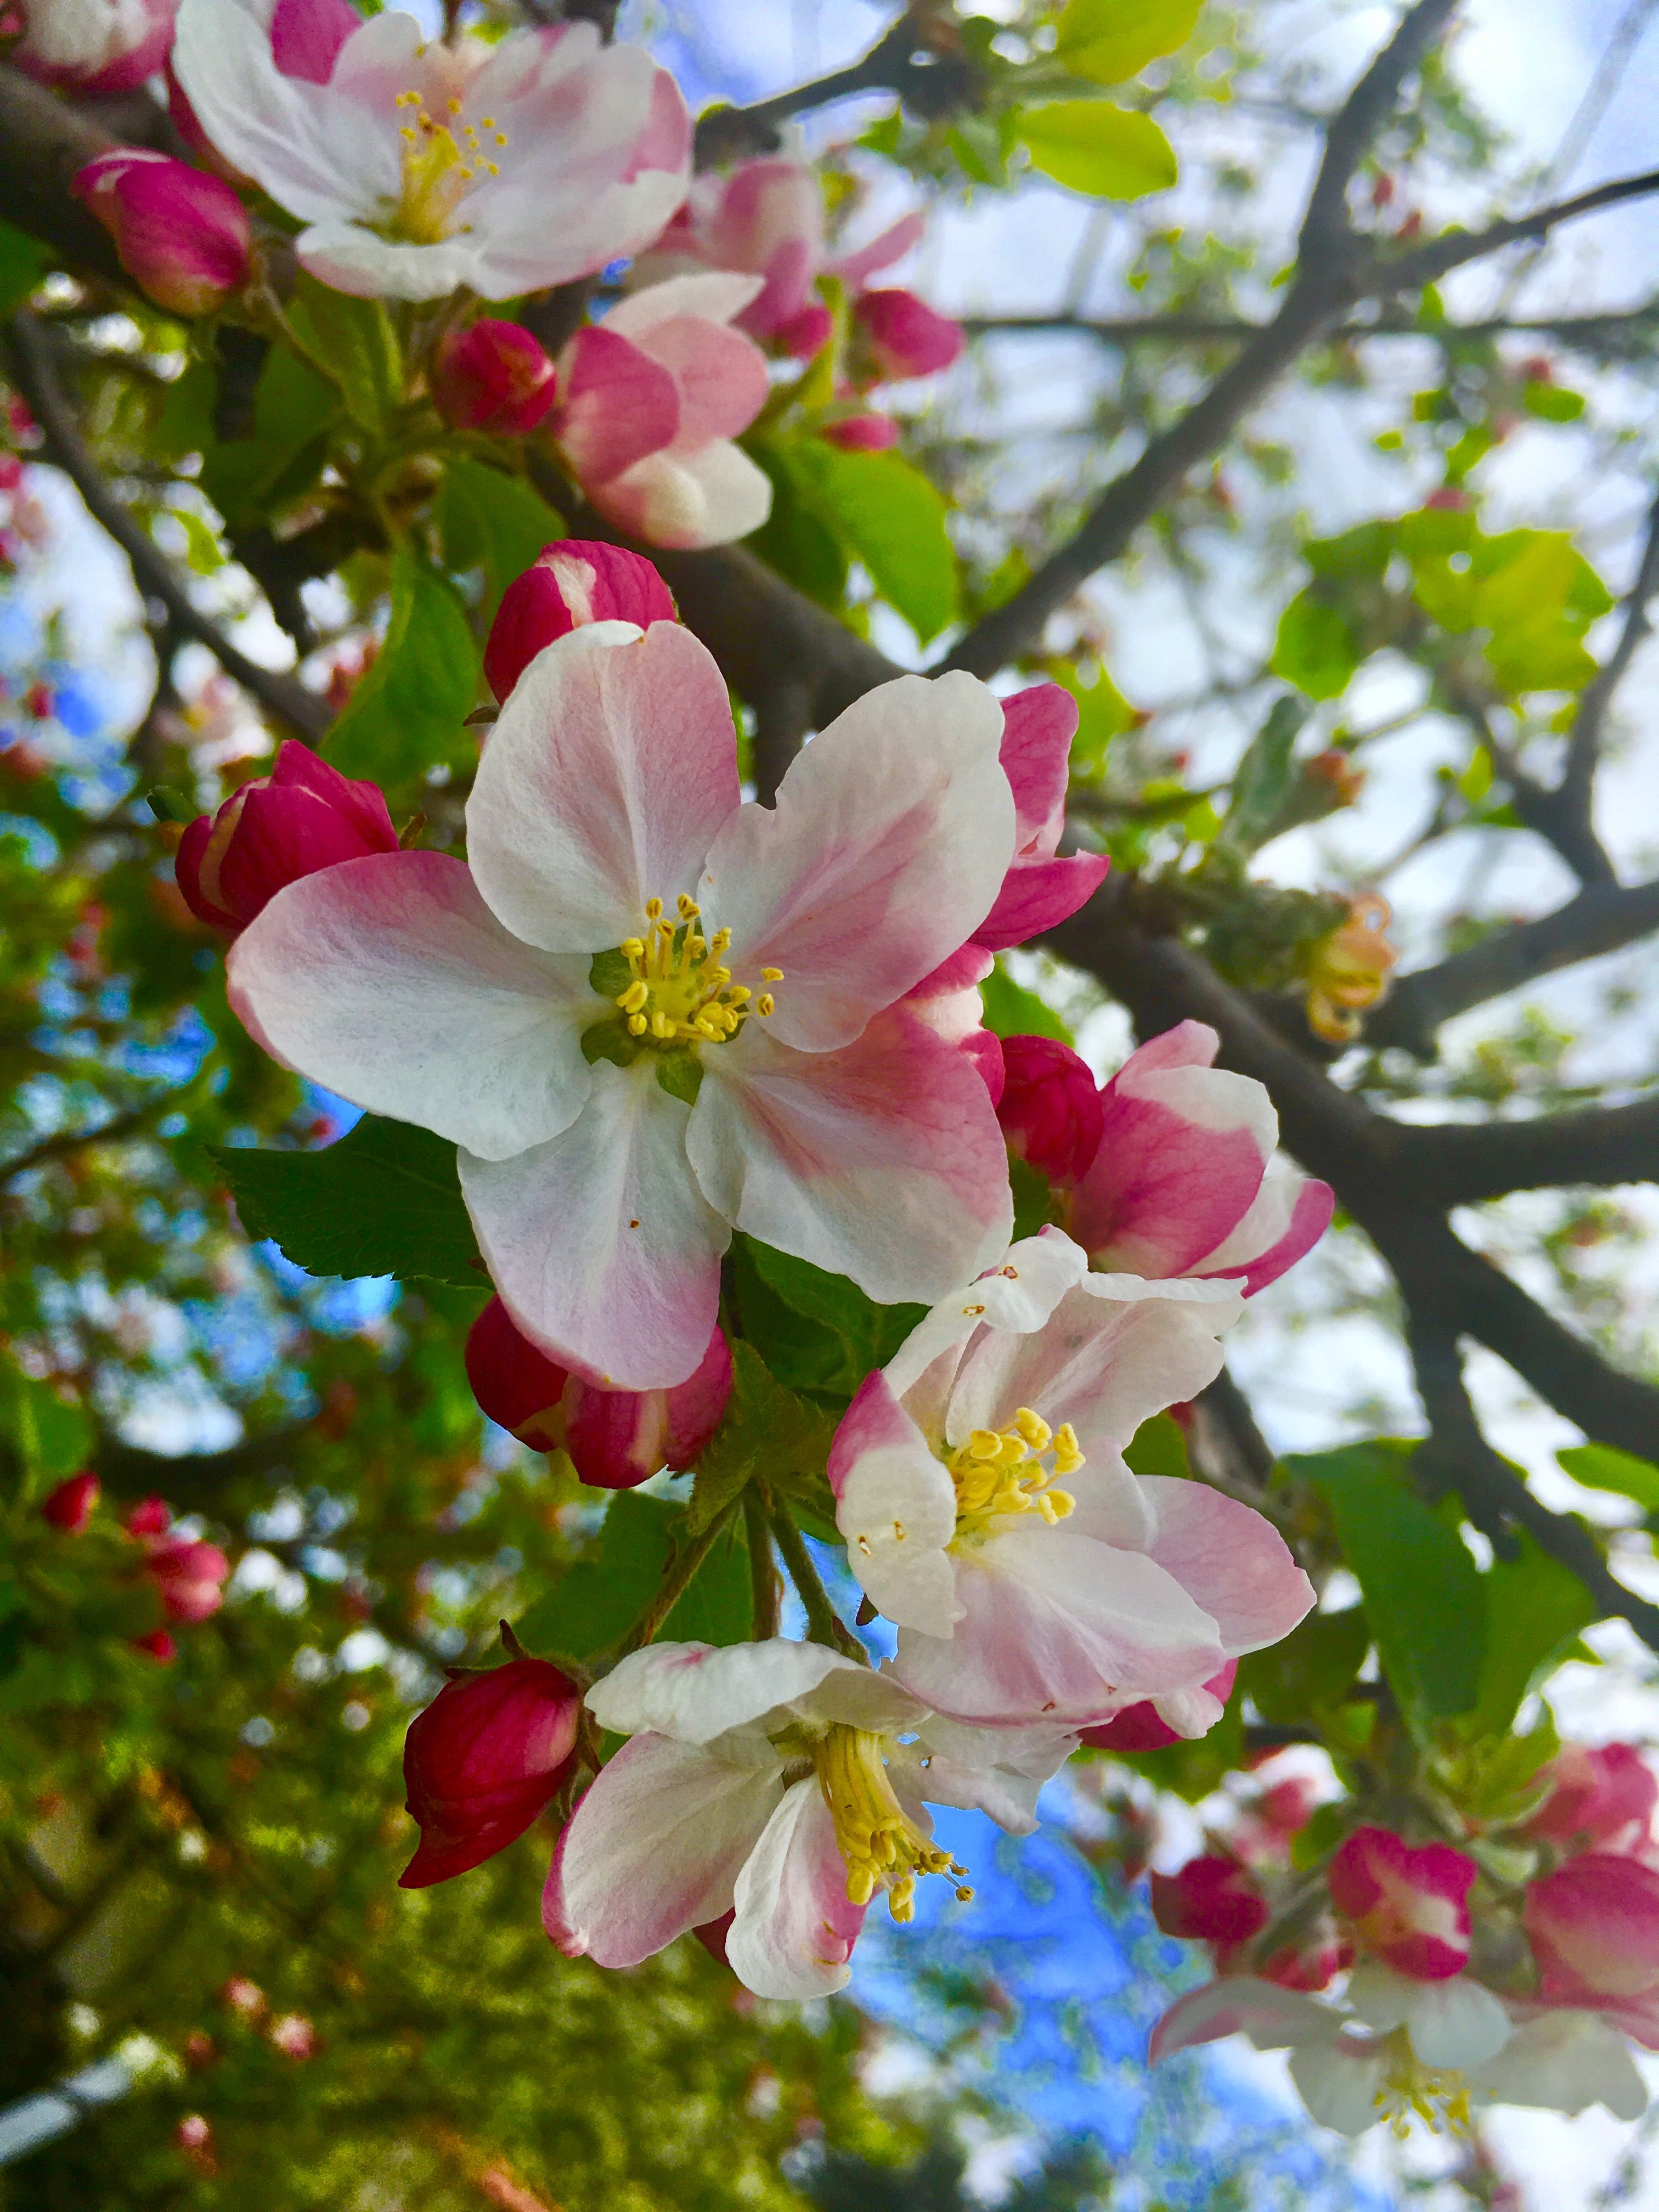 Flower Aesthetic Nature Apple Blossom Spring Love Blossom Flowers Spring